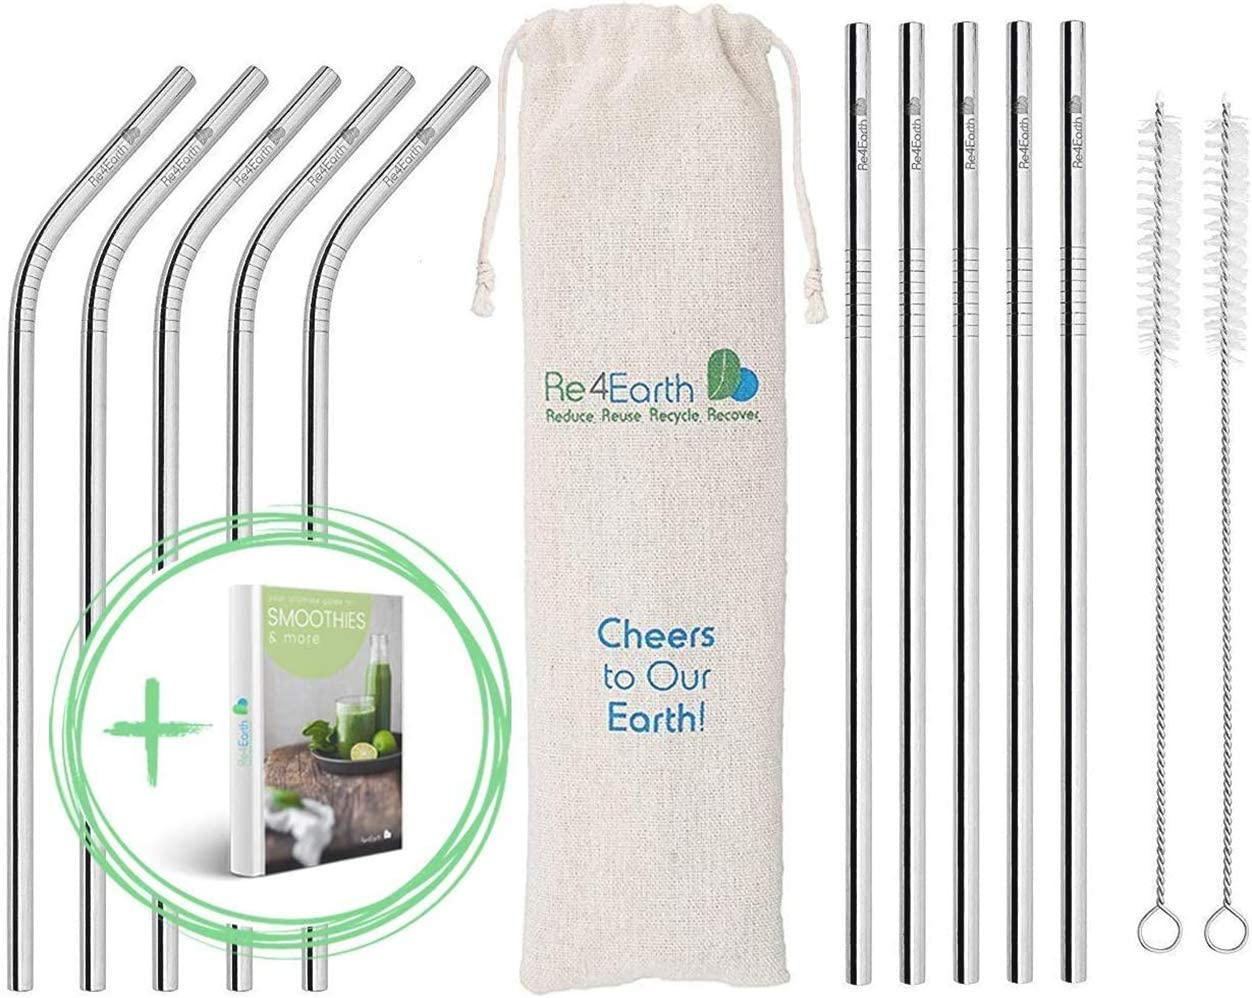 Auto Kitchen Patio and More Steam Cleaning with 9-Piece Accessory Set Purpose and Multi-Surface All Natural for Home Handheld Pressurized Steam Cleaner